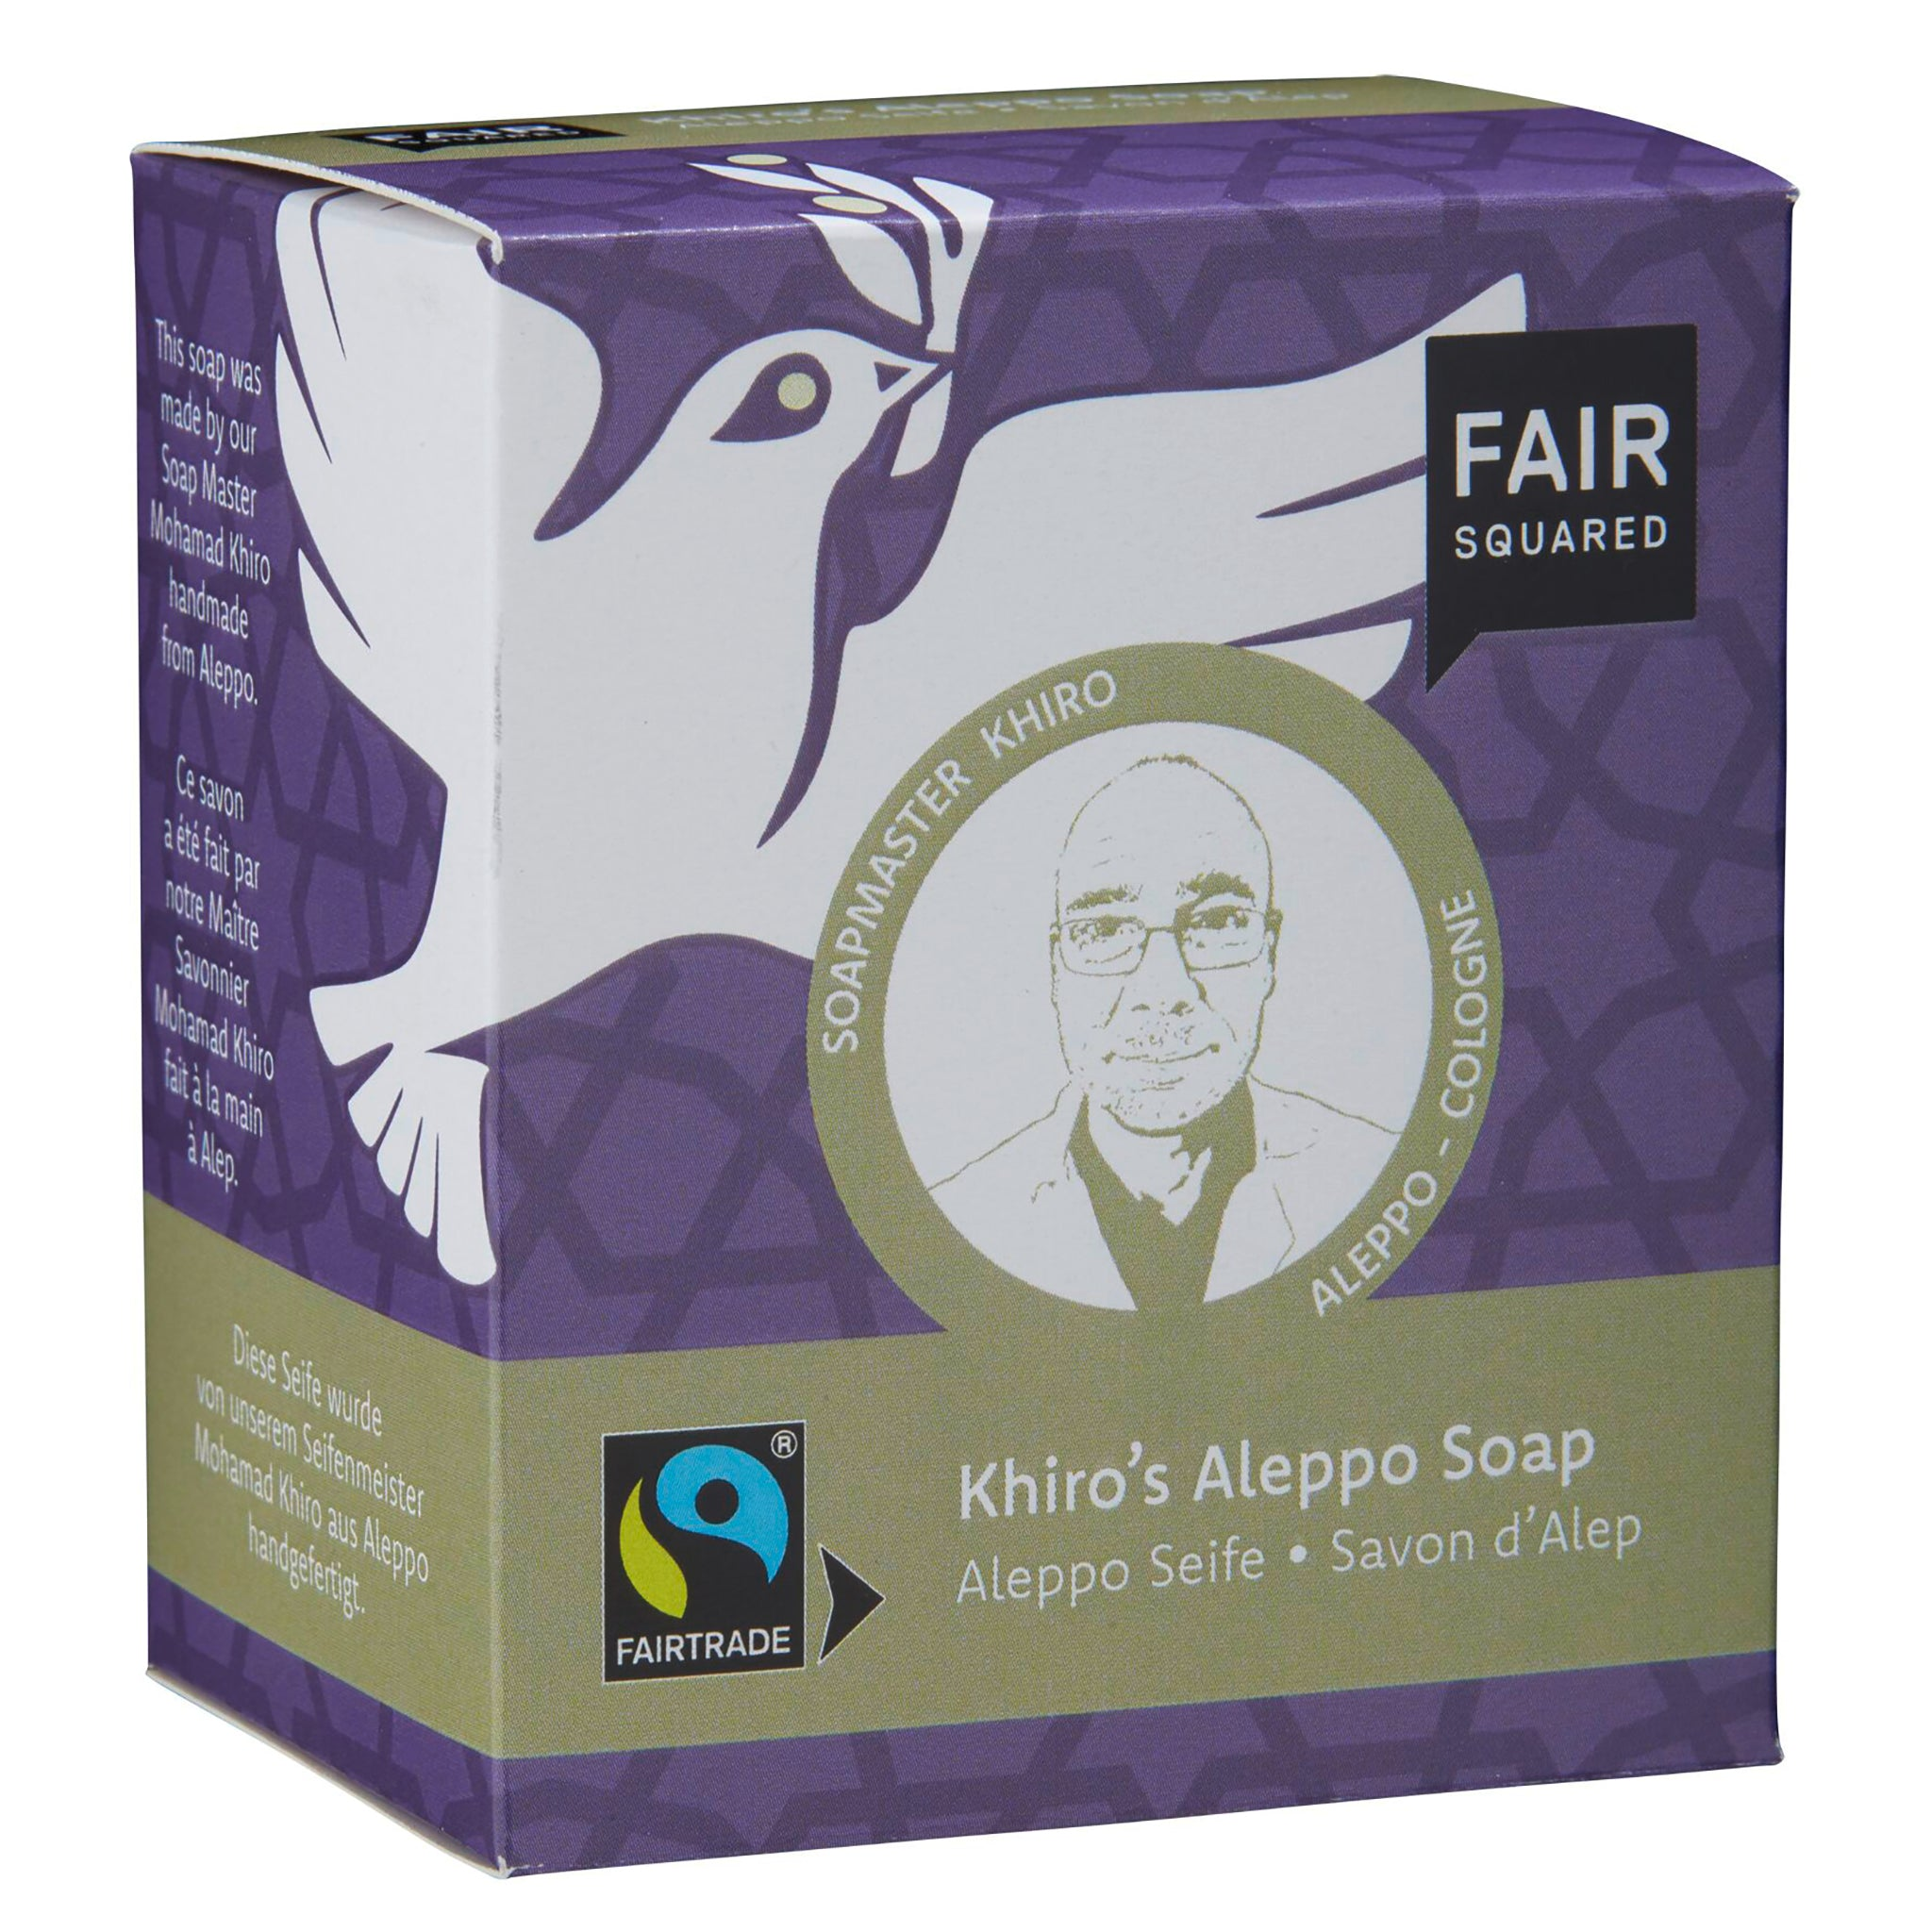 Khiro's Aleppo Soap with Cotton Soap Bag